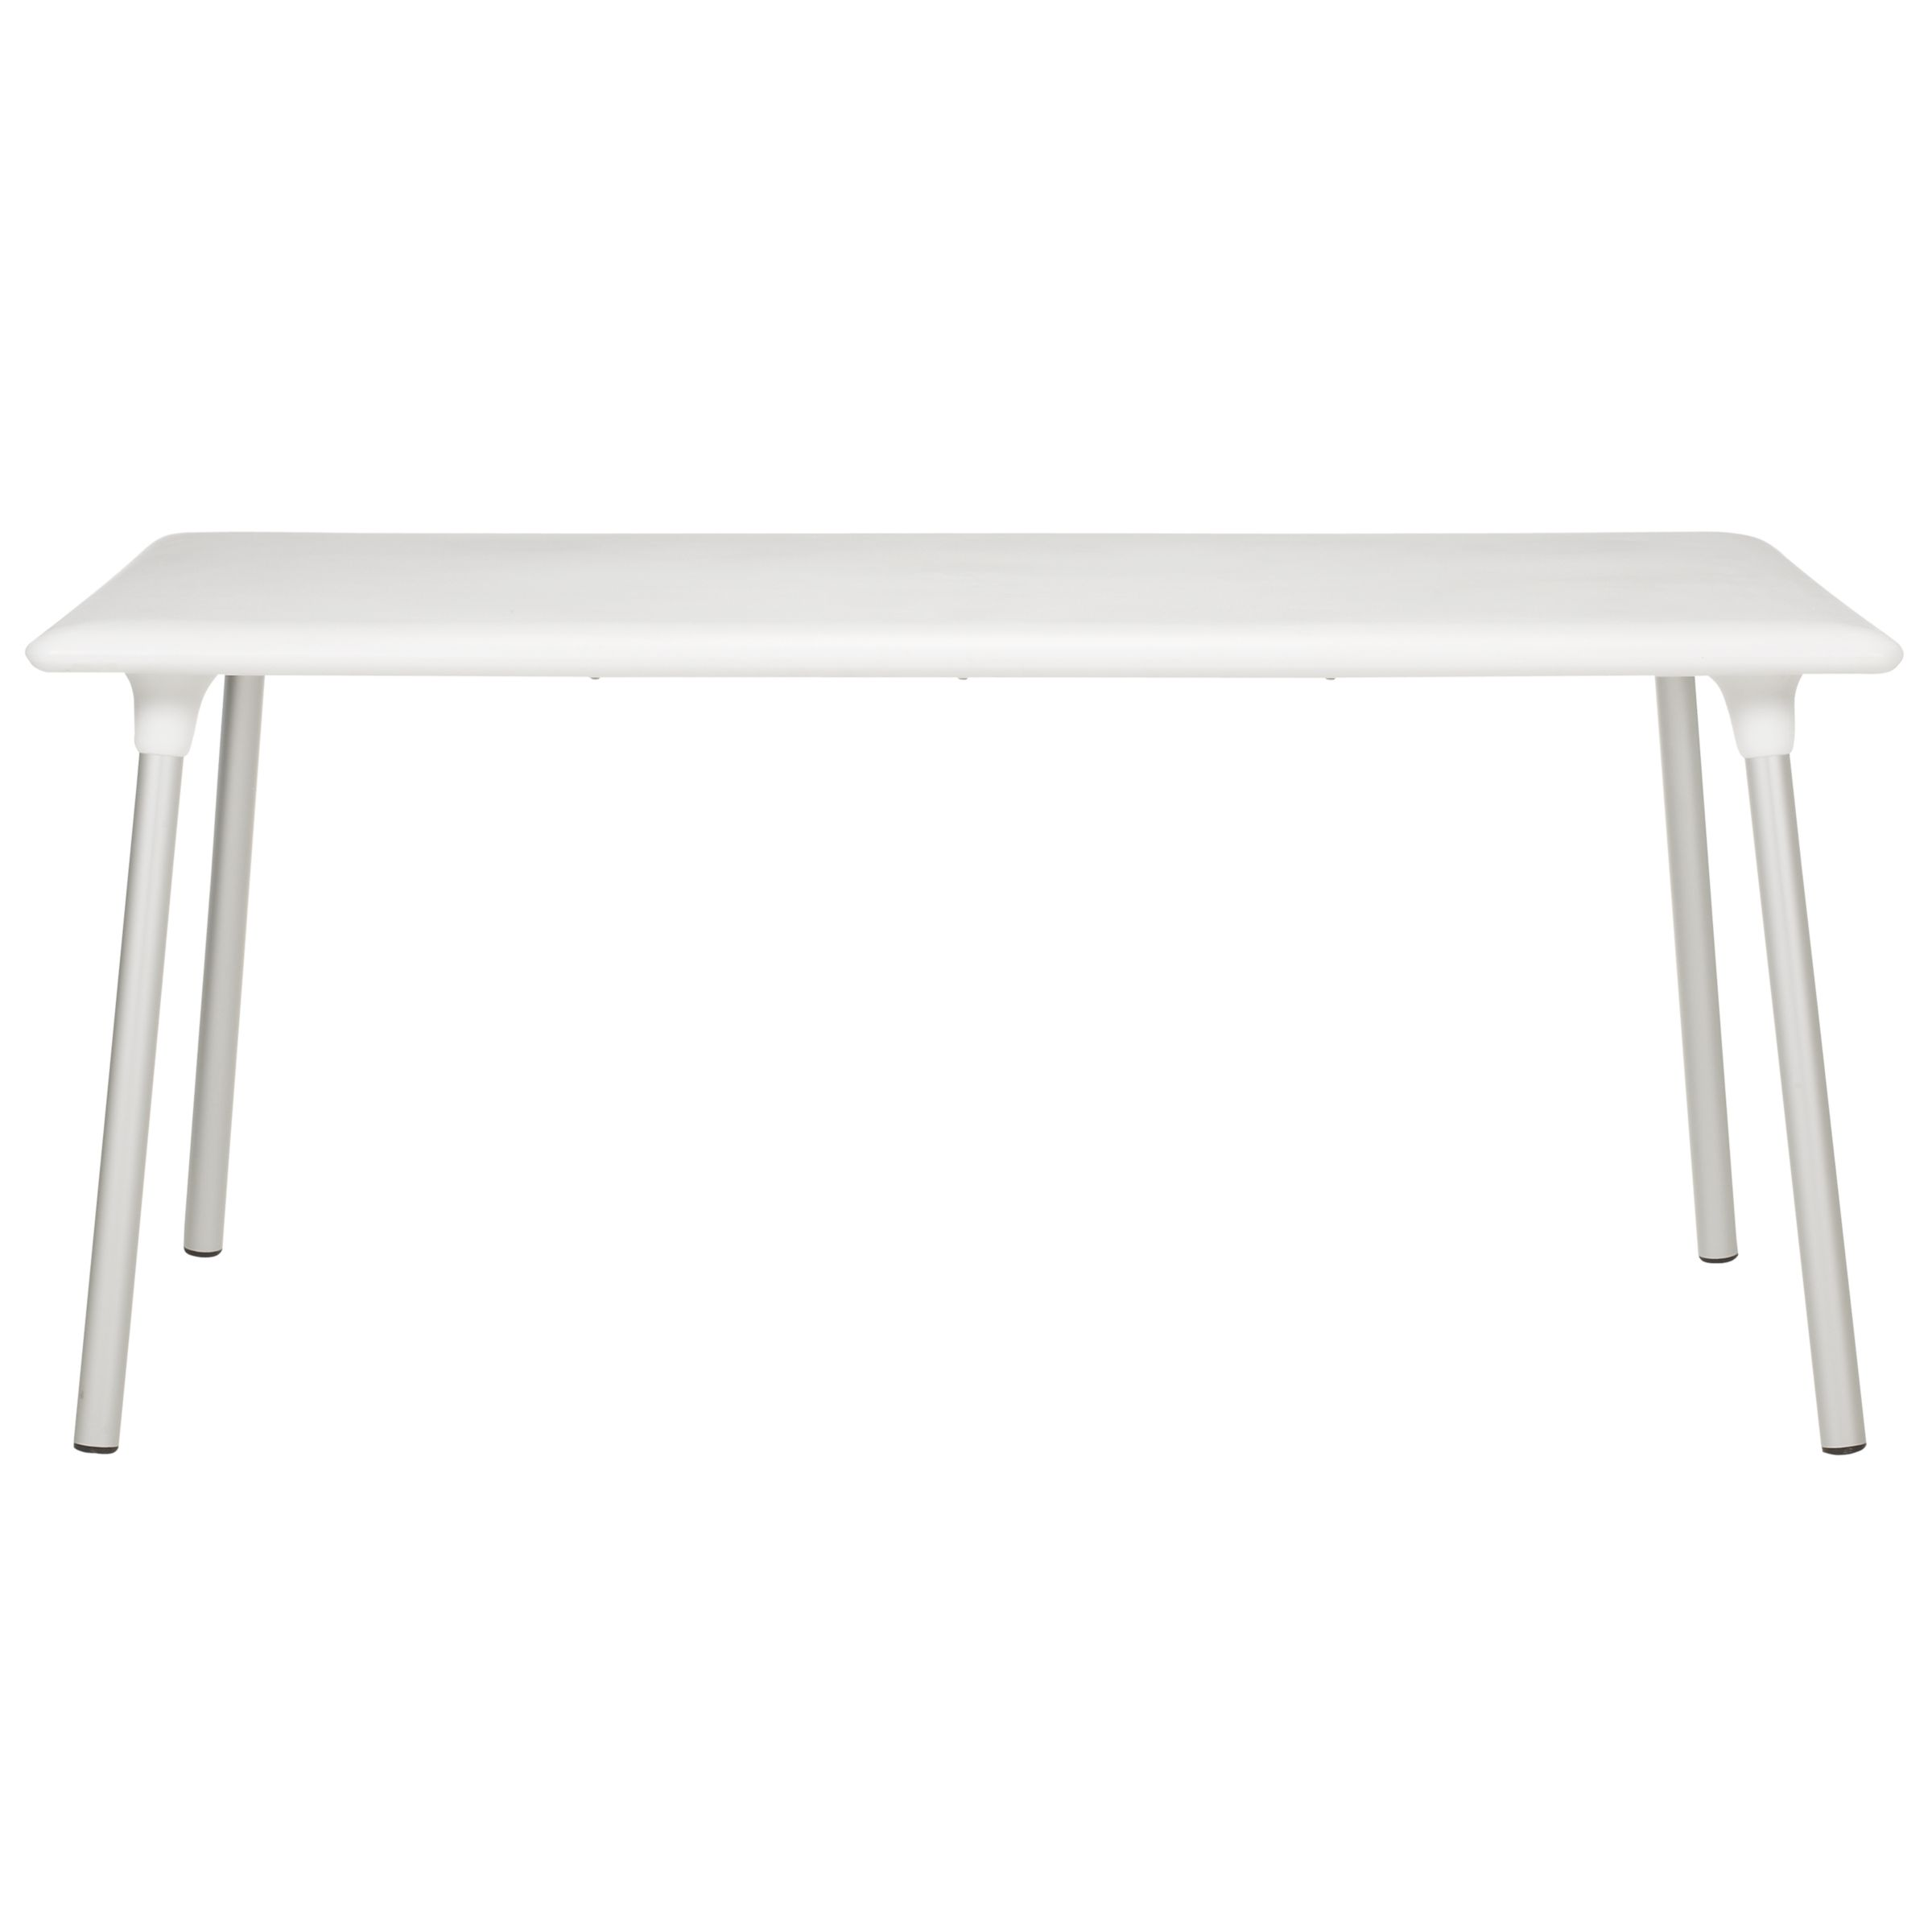 Resol Flash Outdoor Dining Table